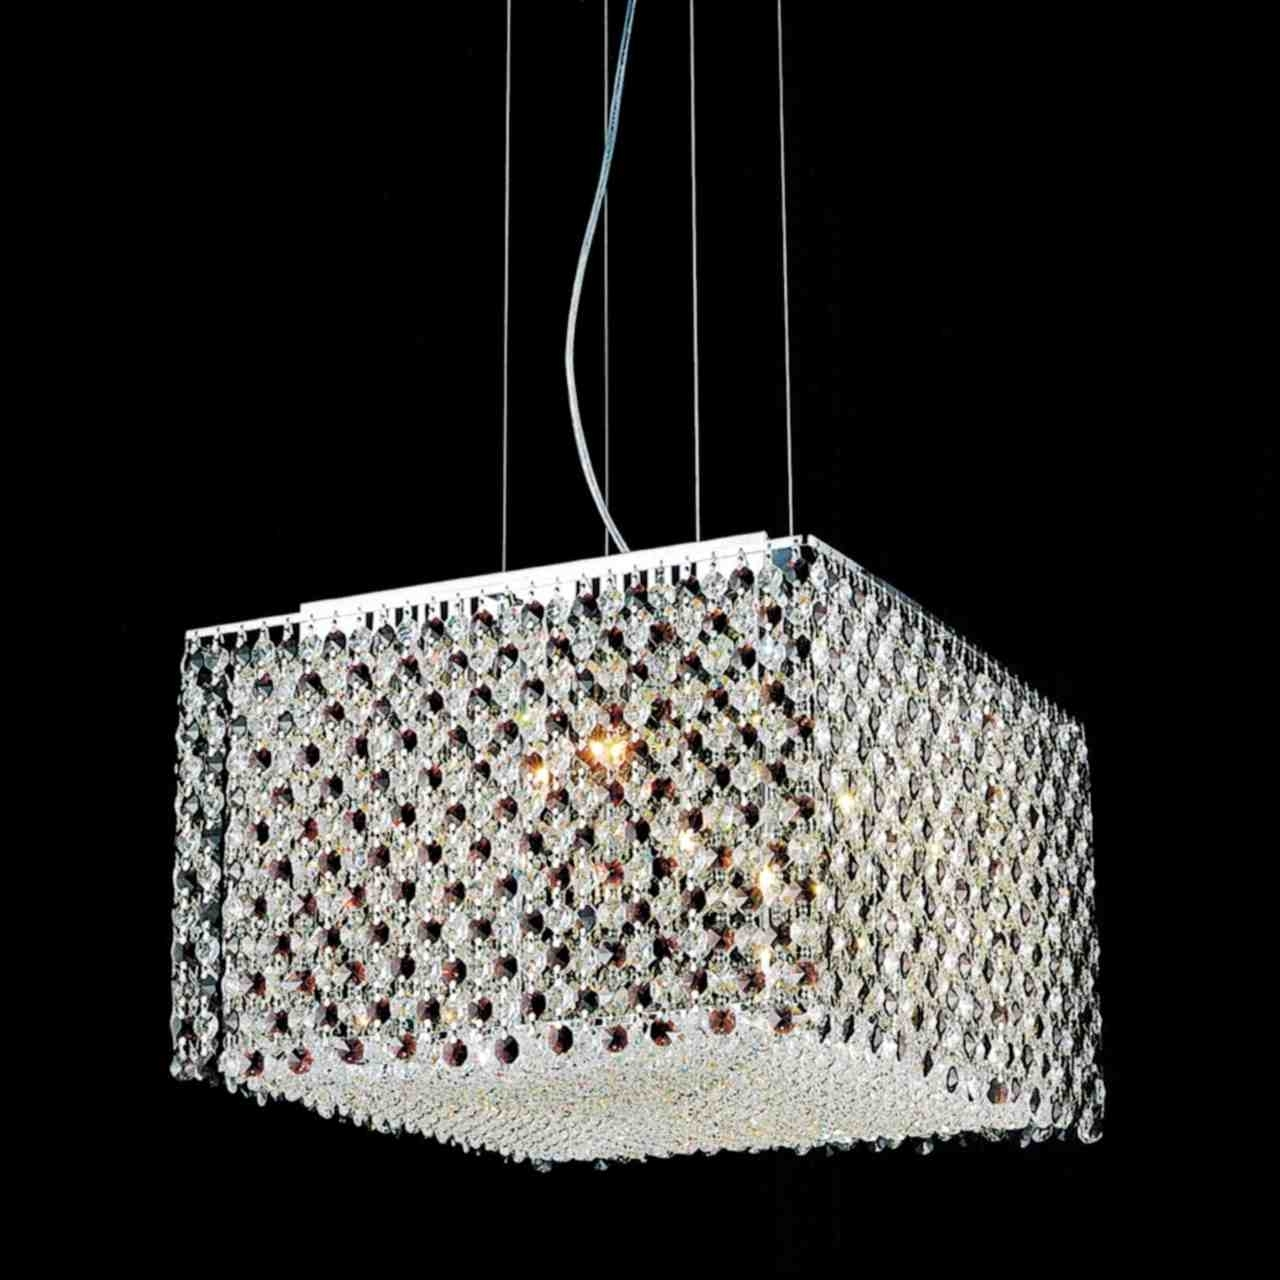 Modern Small Chandeliers Within Most Recently Released Chandeliers Design : Awesome Chandeliers Amazon Com Lighting Ceiling (View 12 of 20)